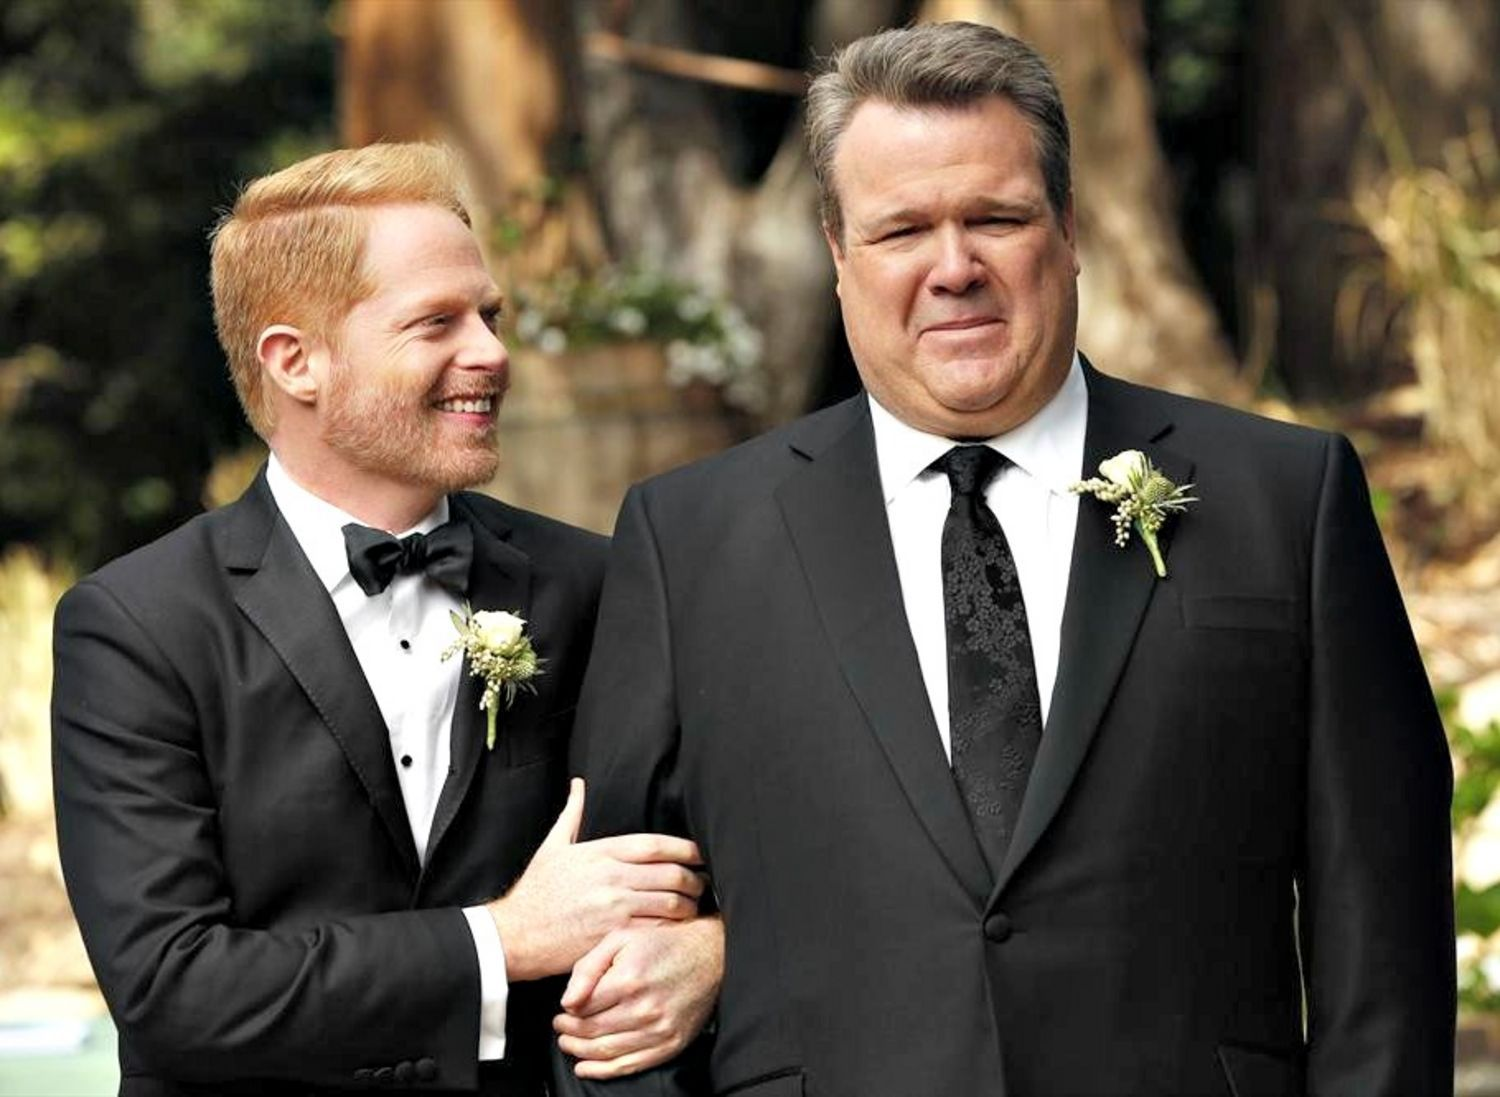 Pin By Alana Rodrigues Peixoto On Fav S Movies And Series In 2020 Modern Family Modern Family Season 5 Tv Couples